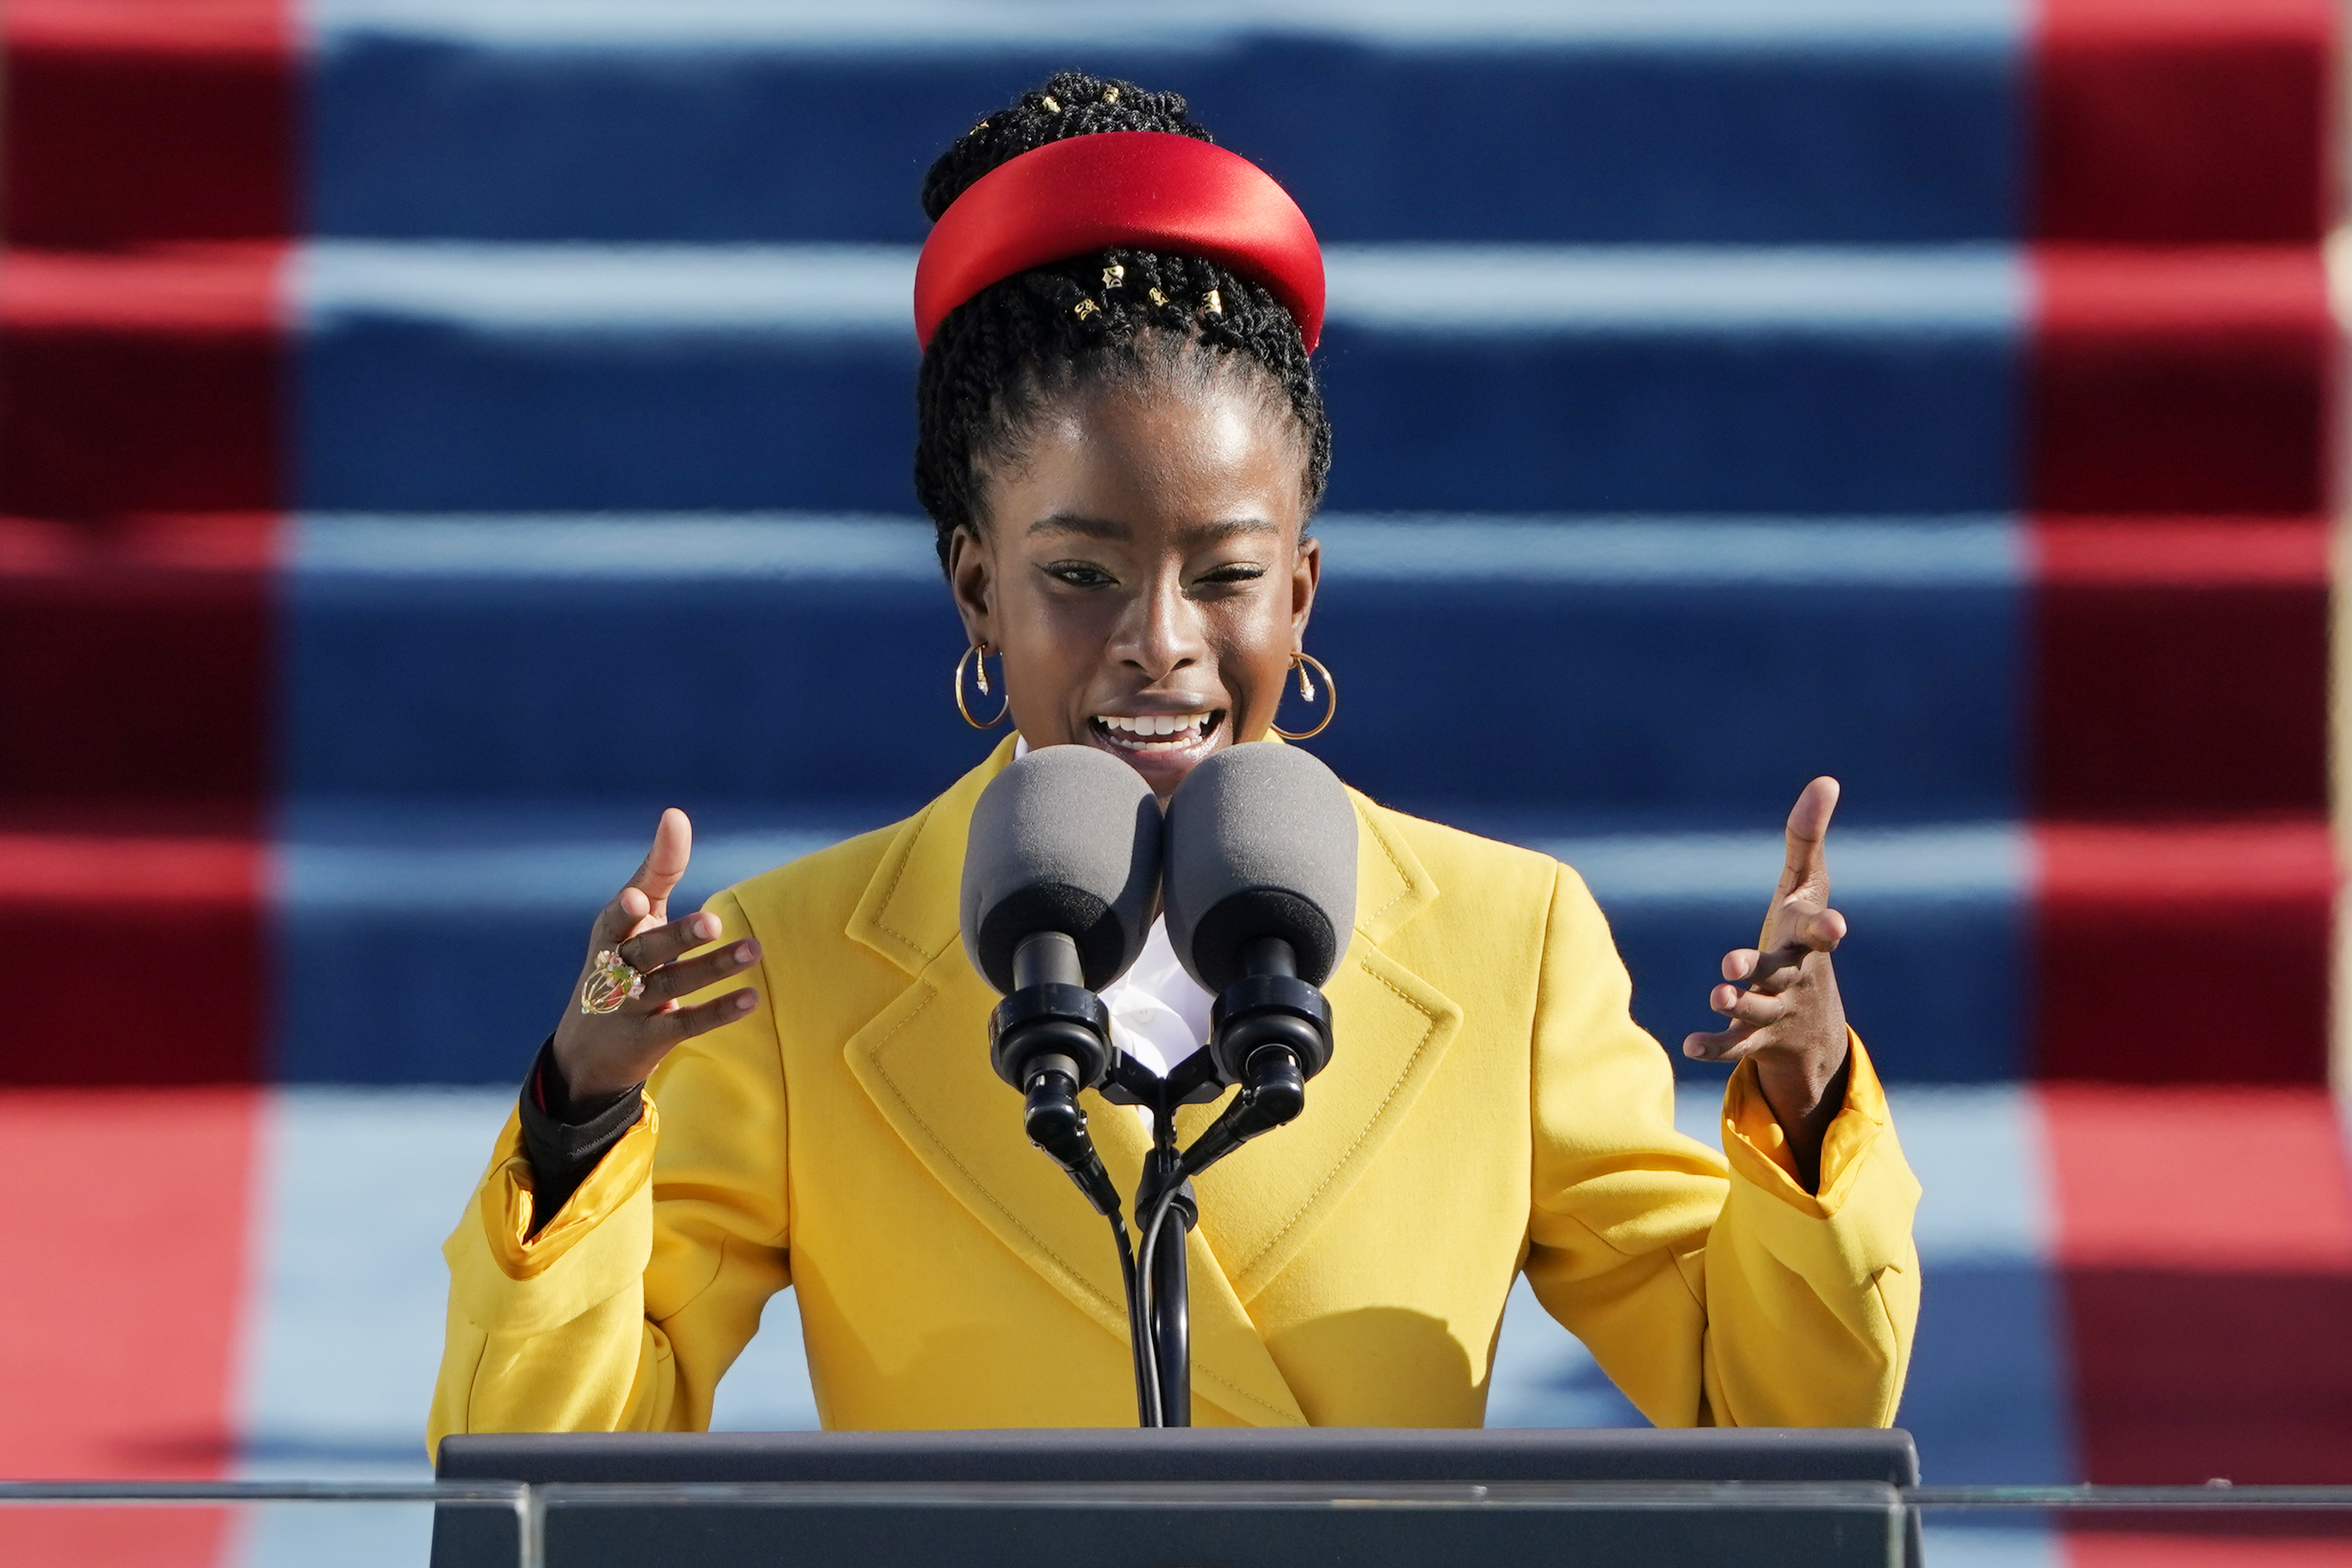 National Youth Poet Laureate Amanda Gorman delivered a stirring performance during Biden's inauguration